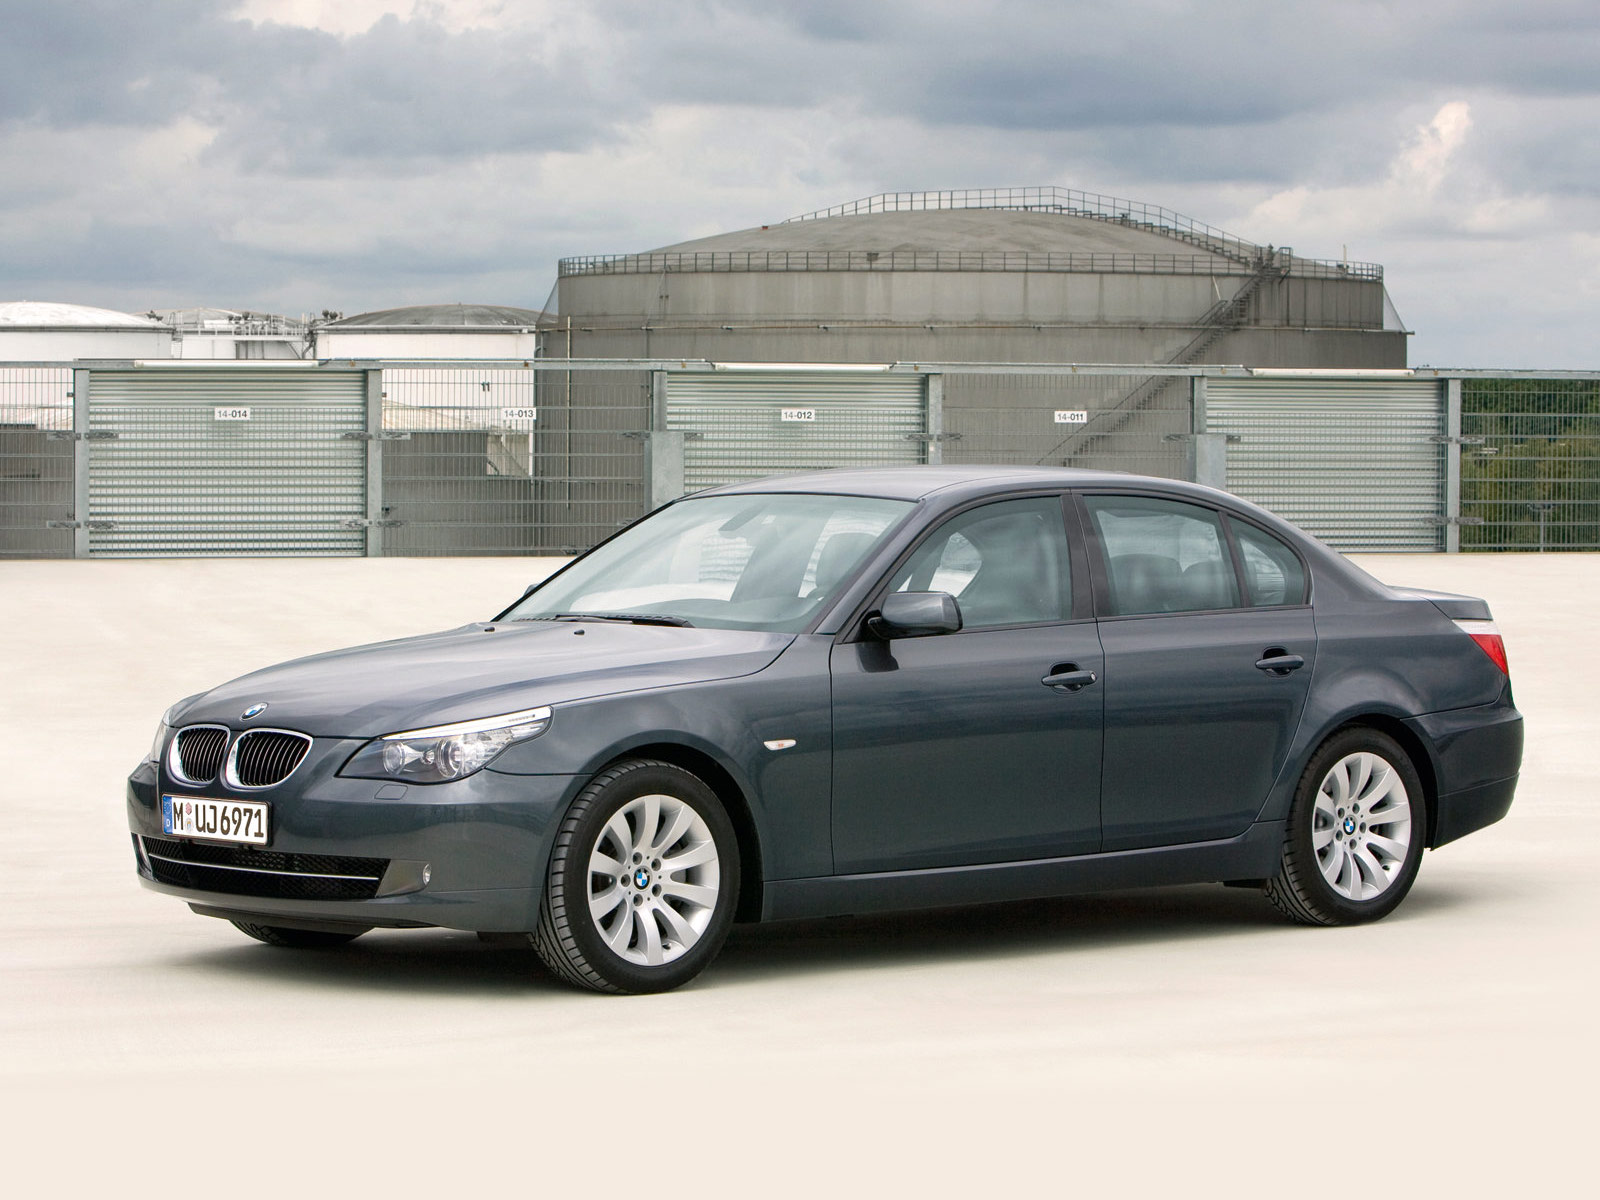 BMW 5 series 528i 2008 photo - 8